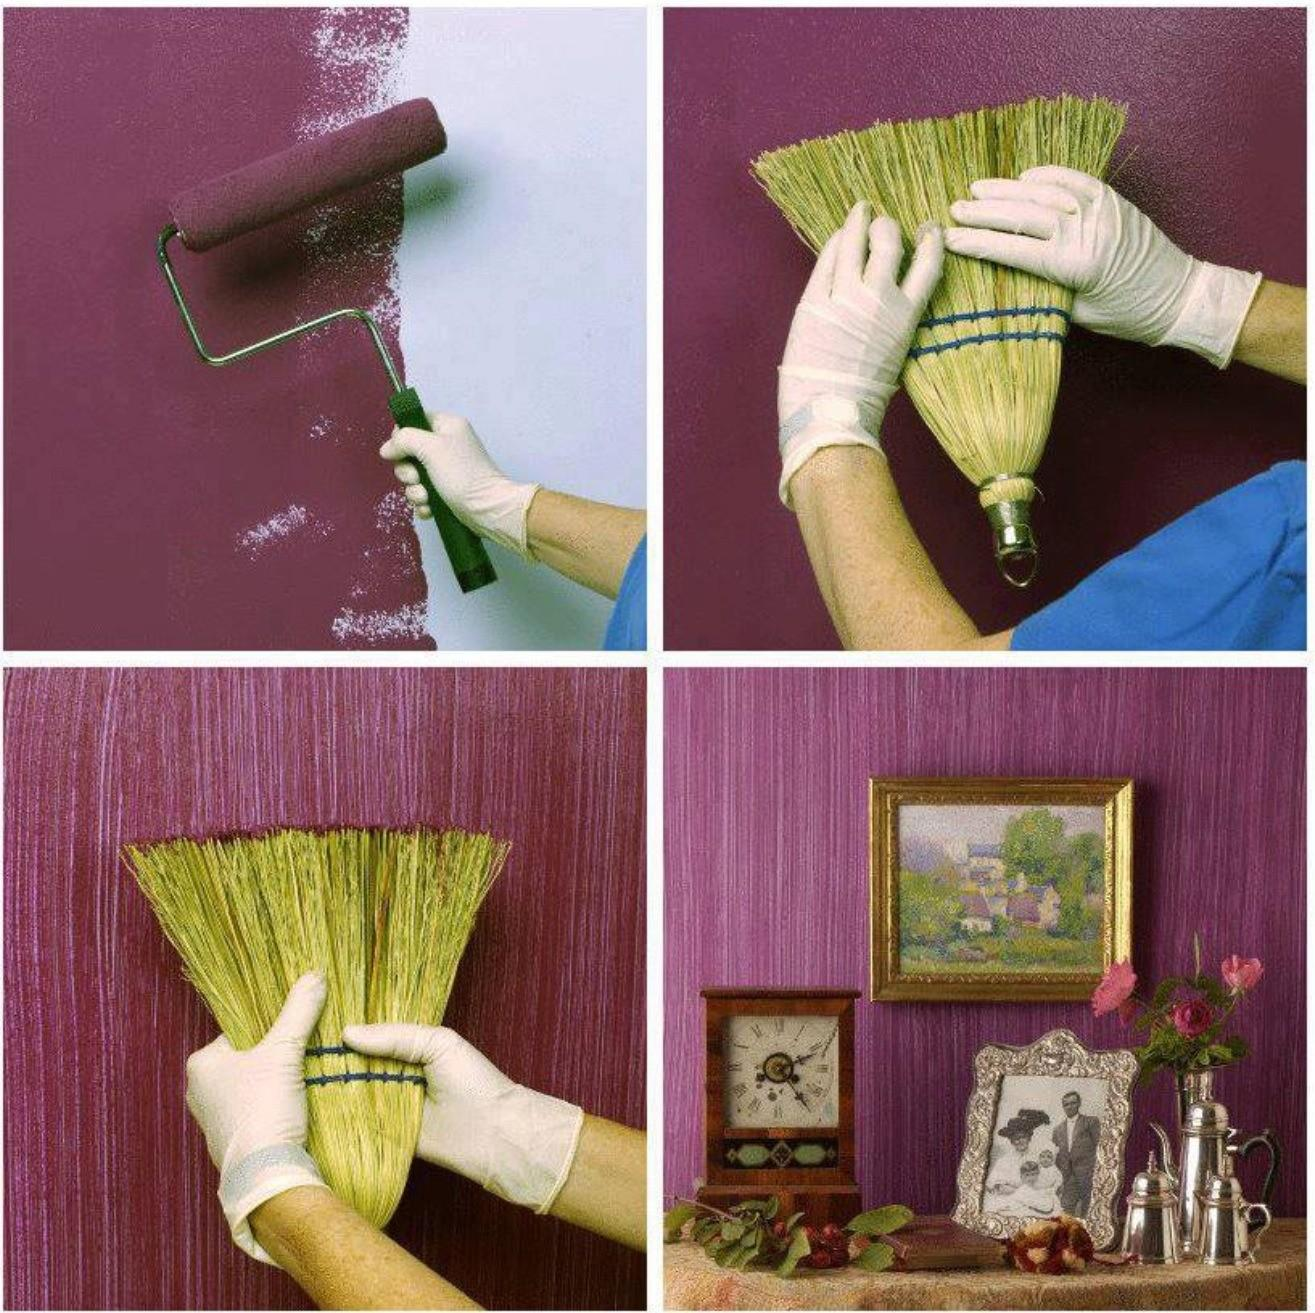 Creative Diy Textured Walls Using Whisk Broom Stylish Eve